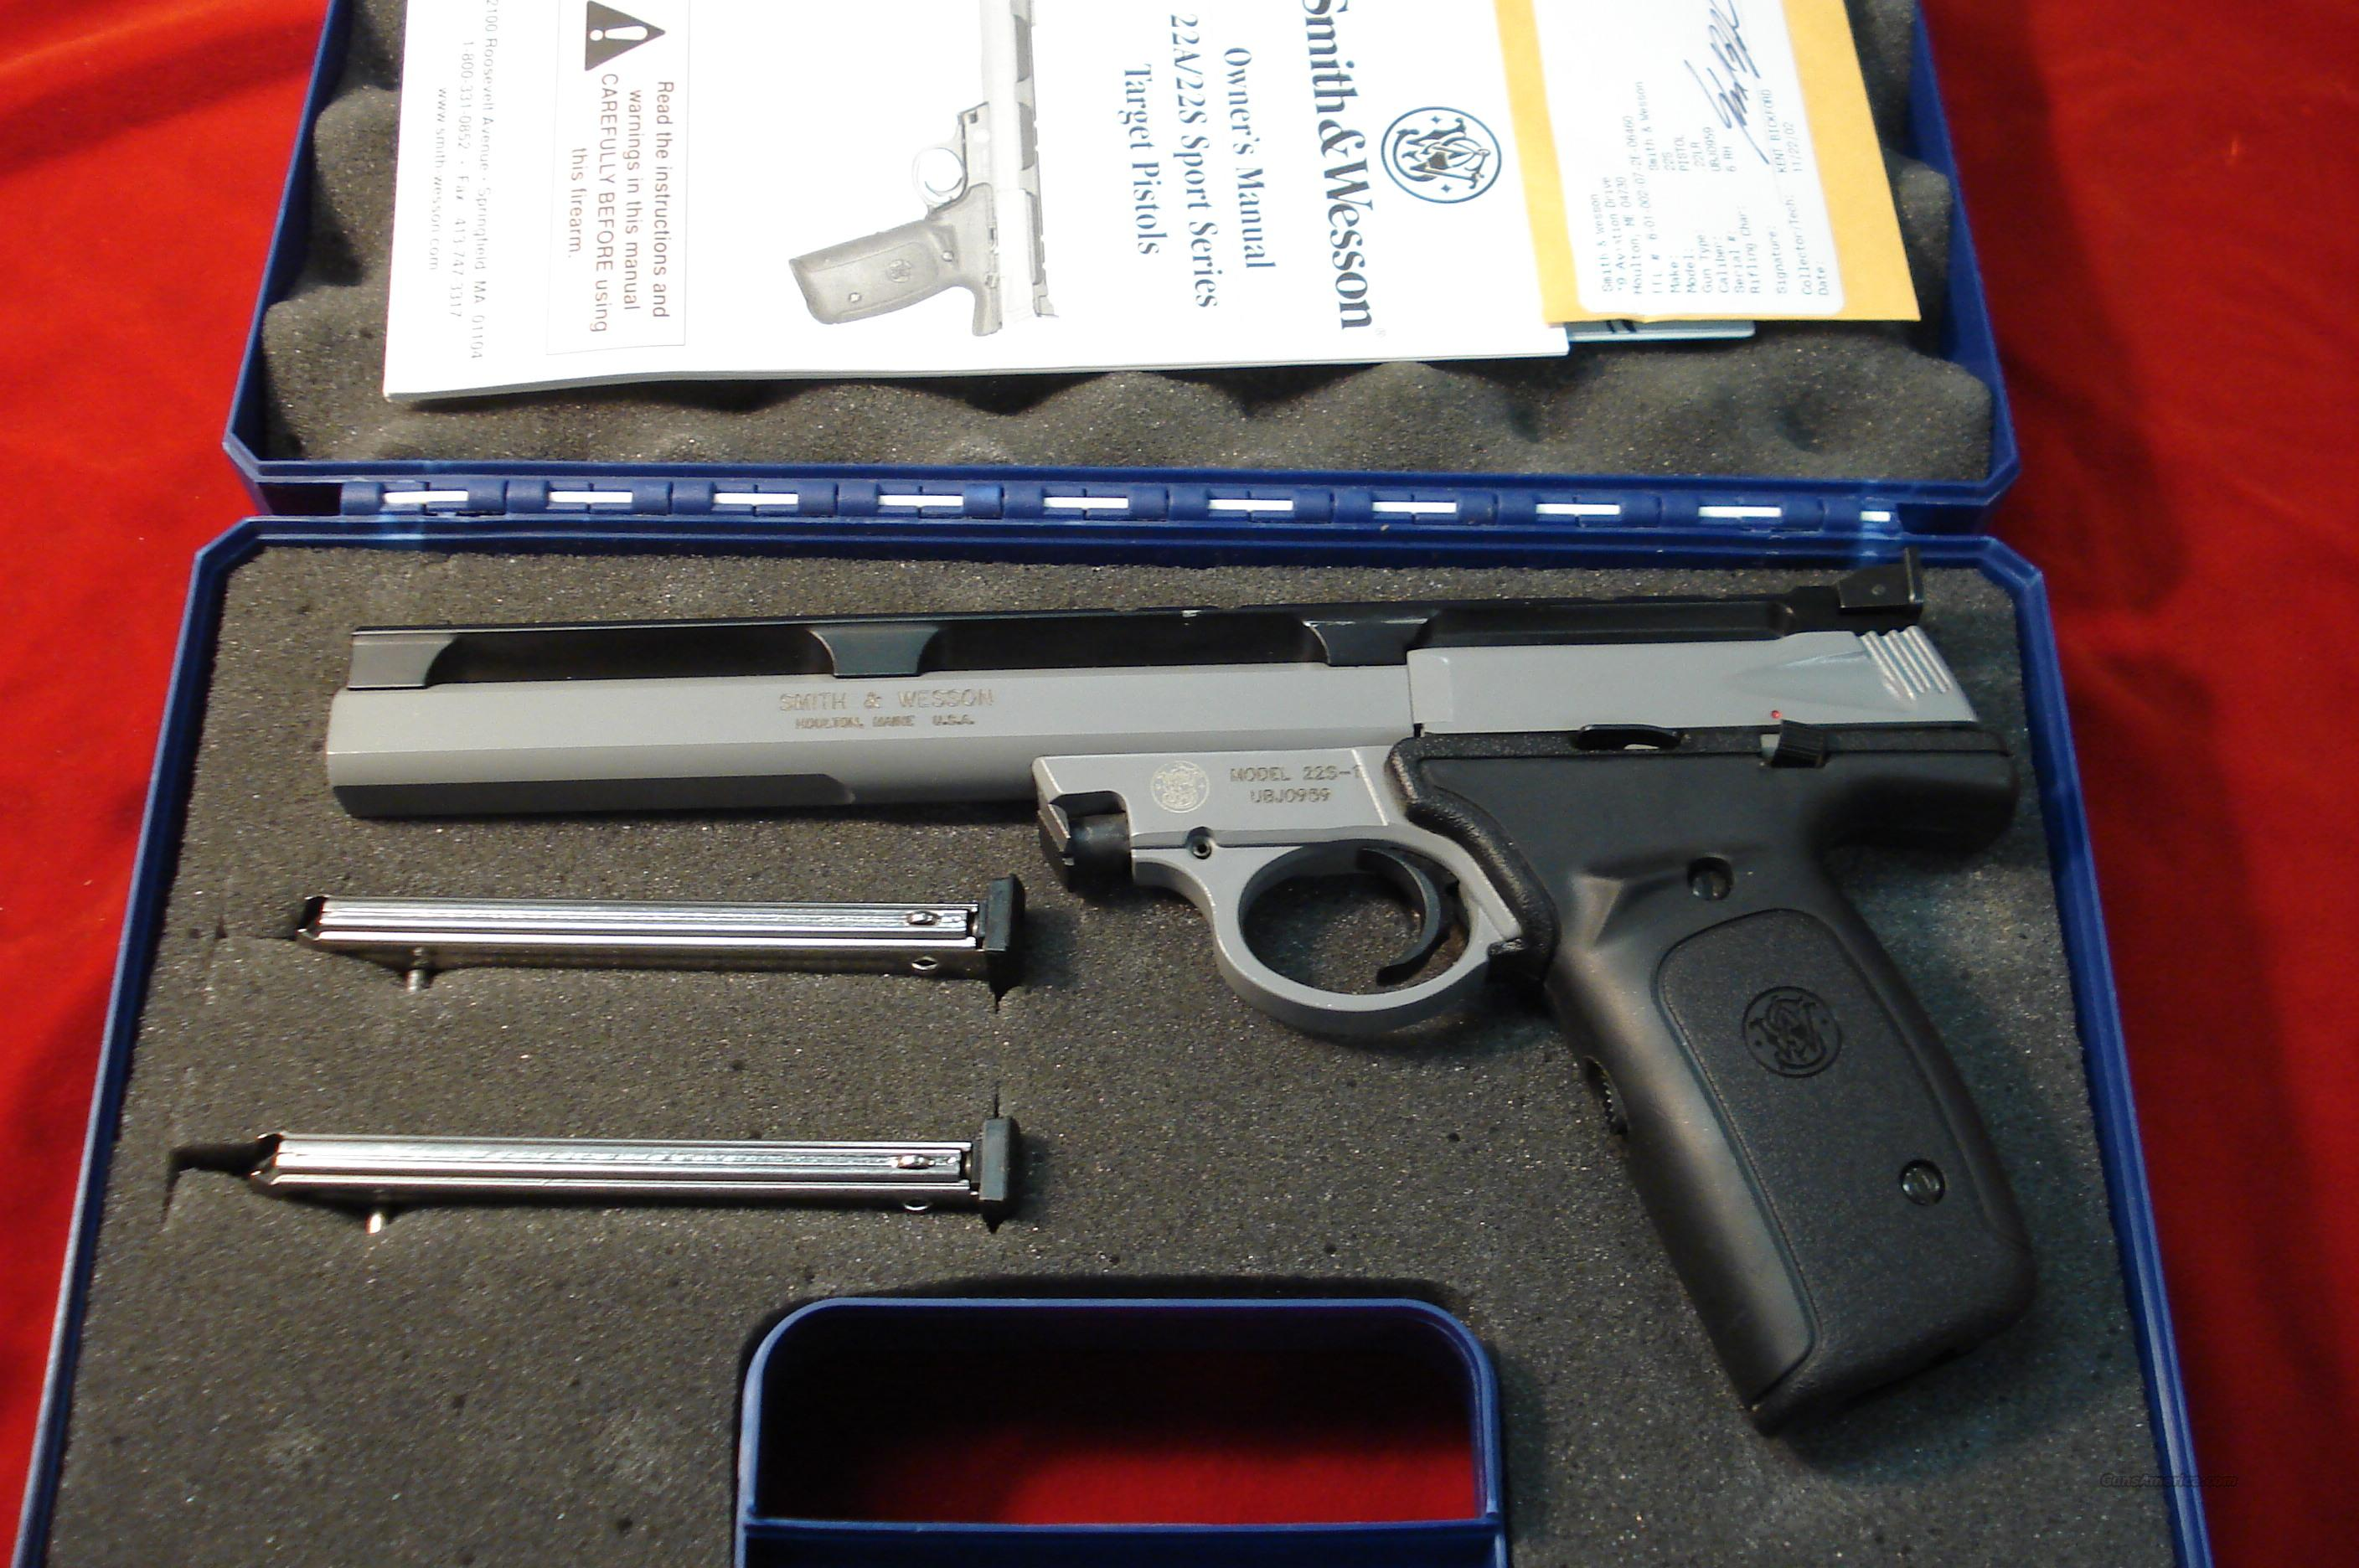 "SMITH AND WESSON 22S 22LR. 7"" LNIB  Guns > Pistols > Smith & Wesson Pistols - Autos > Steel Frame"